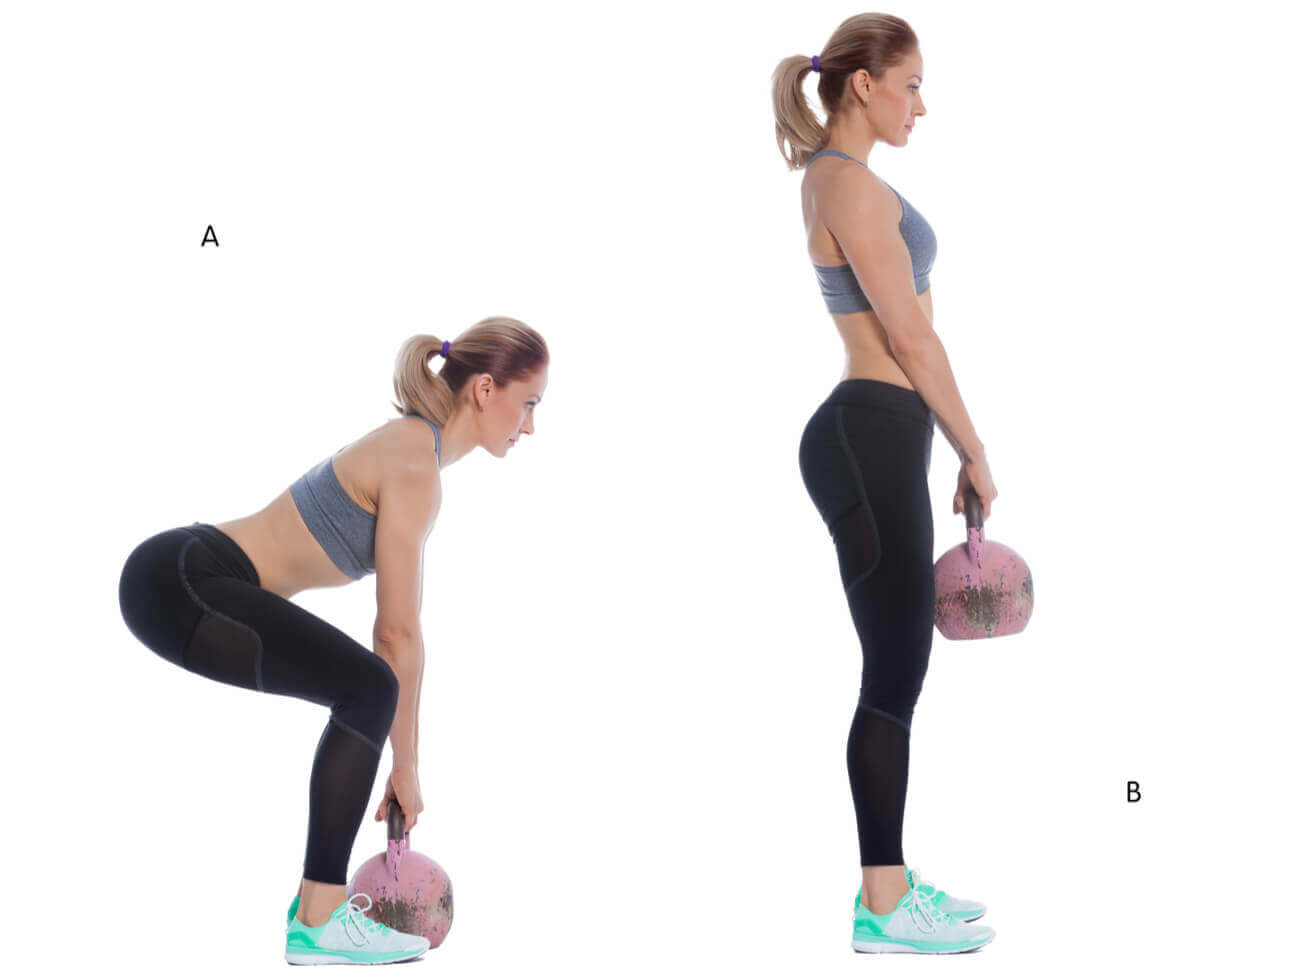 A woman demonstrating the correct way to do a deadlift with a kettlebell.